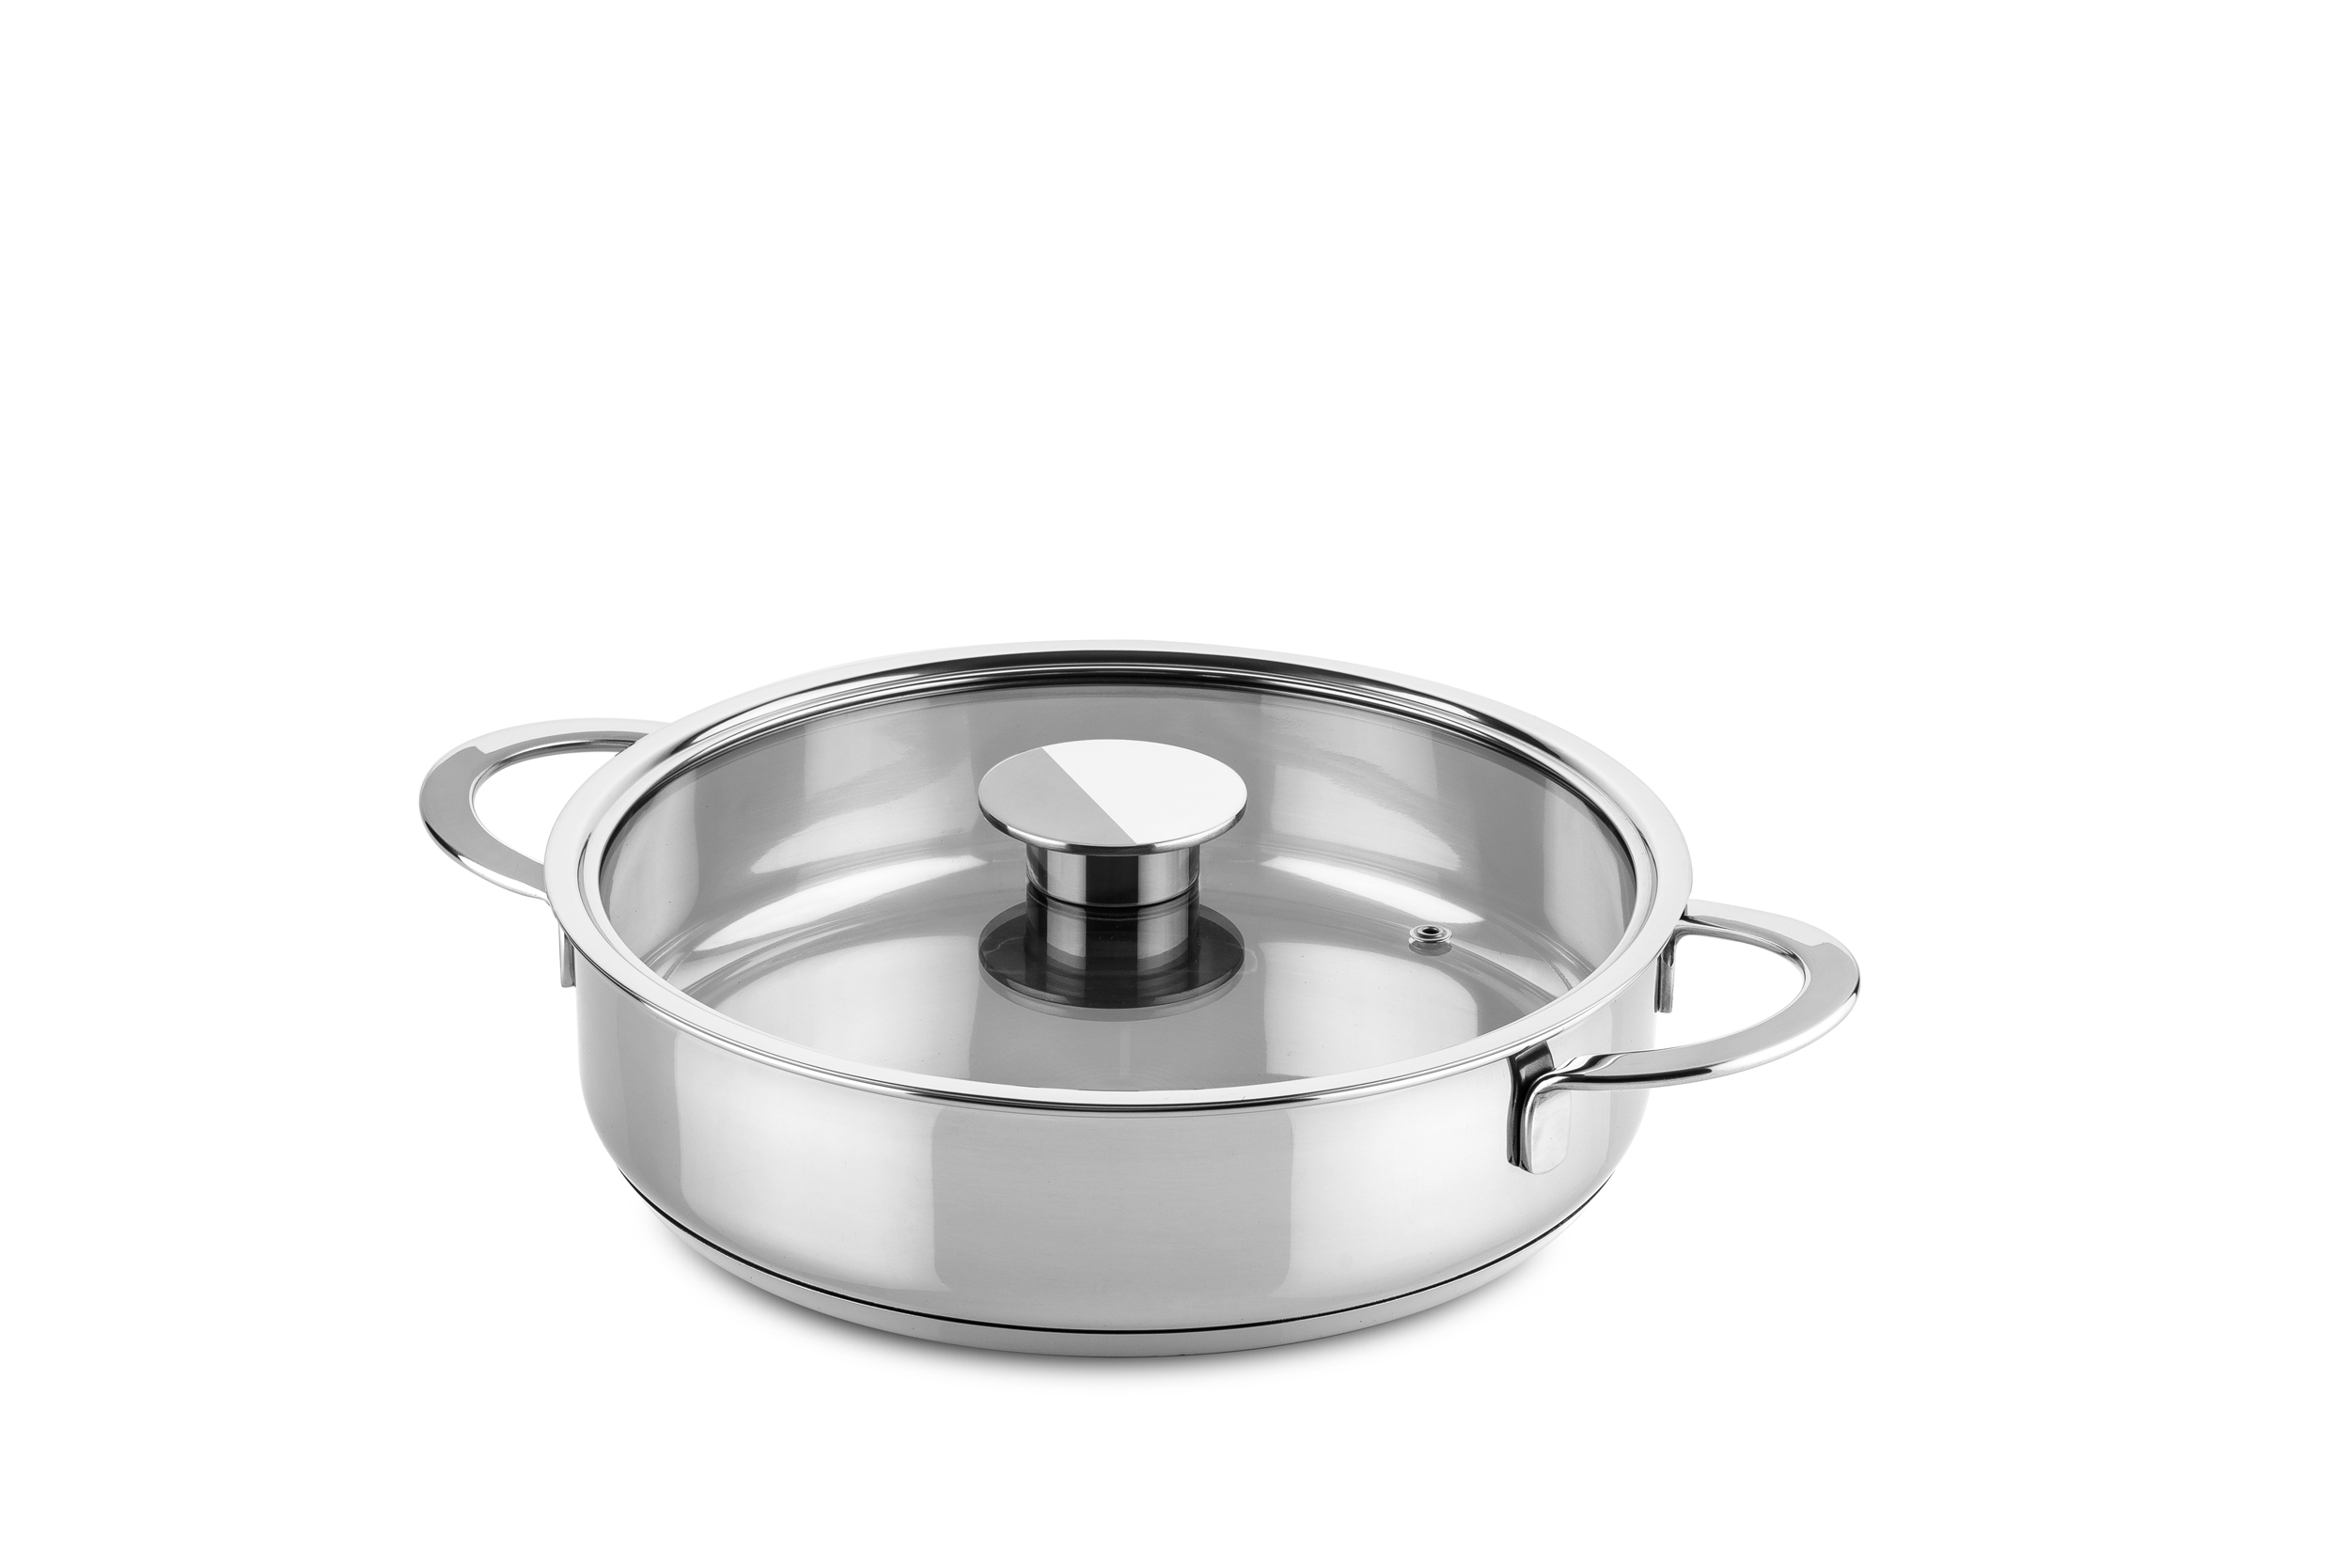 Frying Pan W/Glass Lid Cm 26